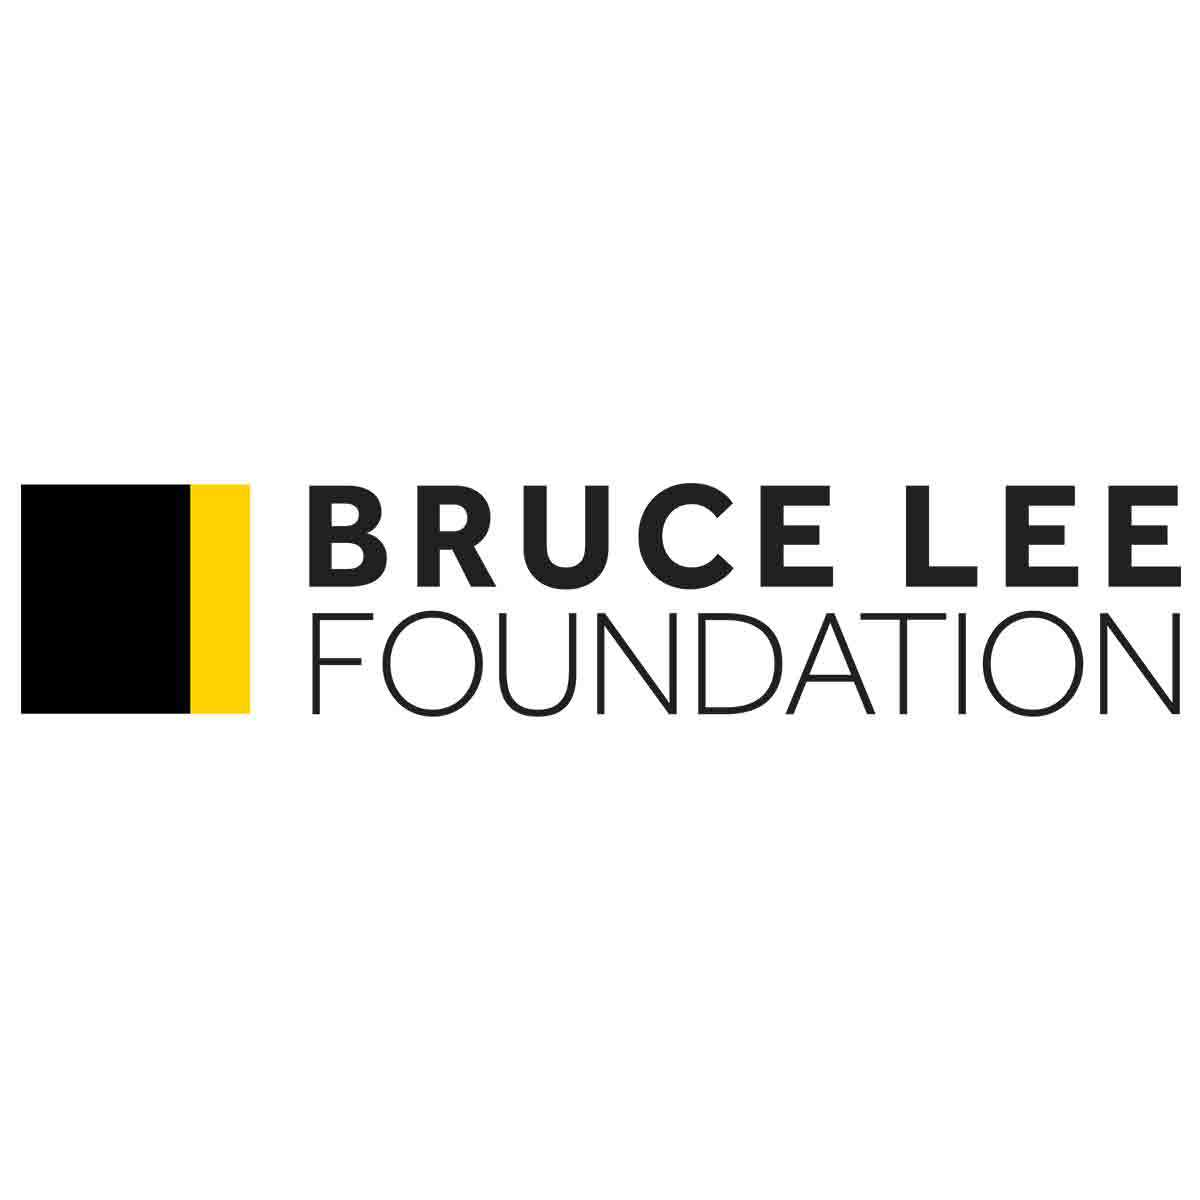 Bruce Lee Foundation Donations